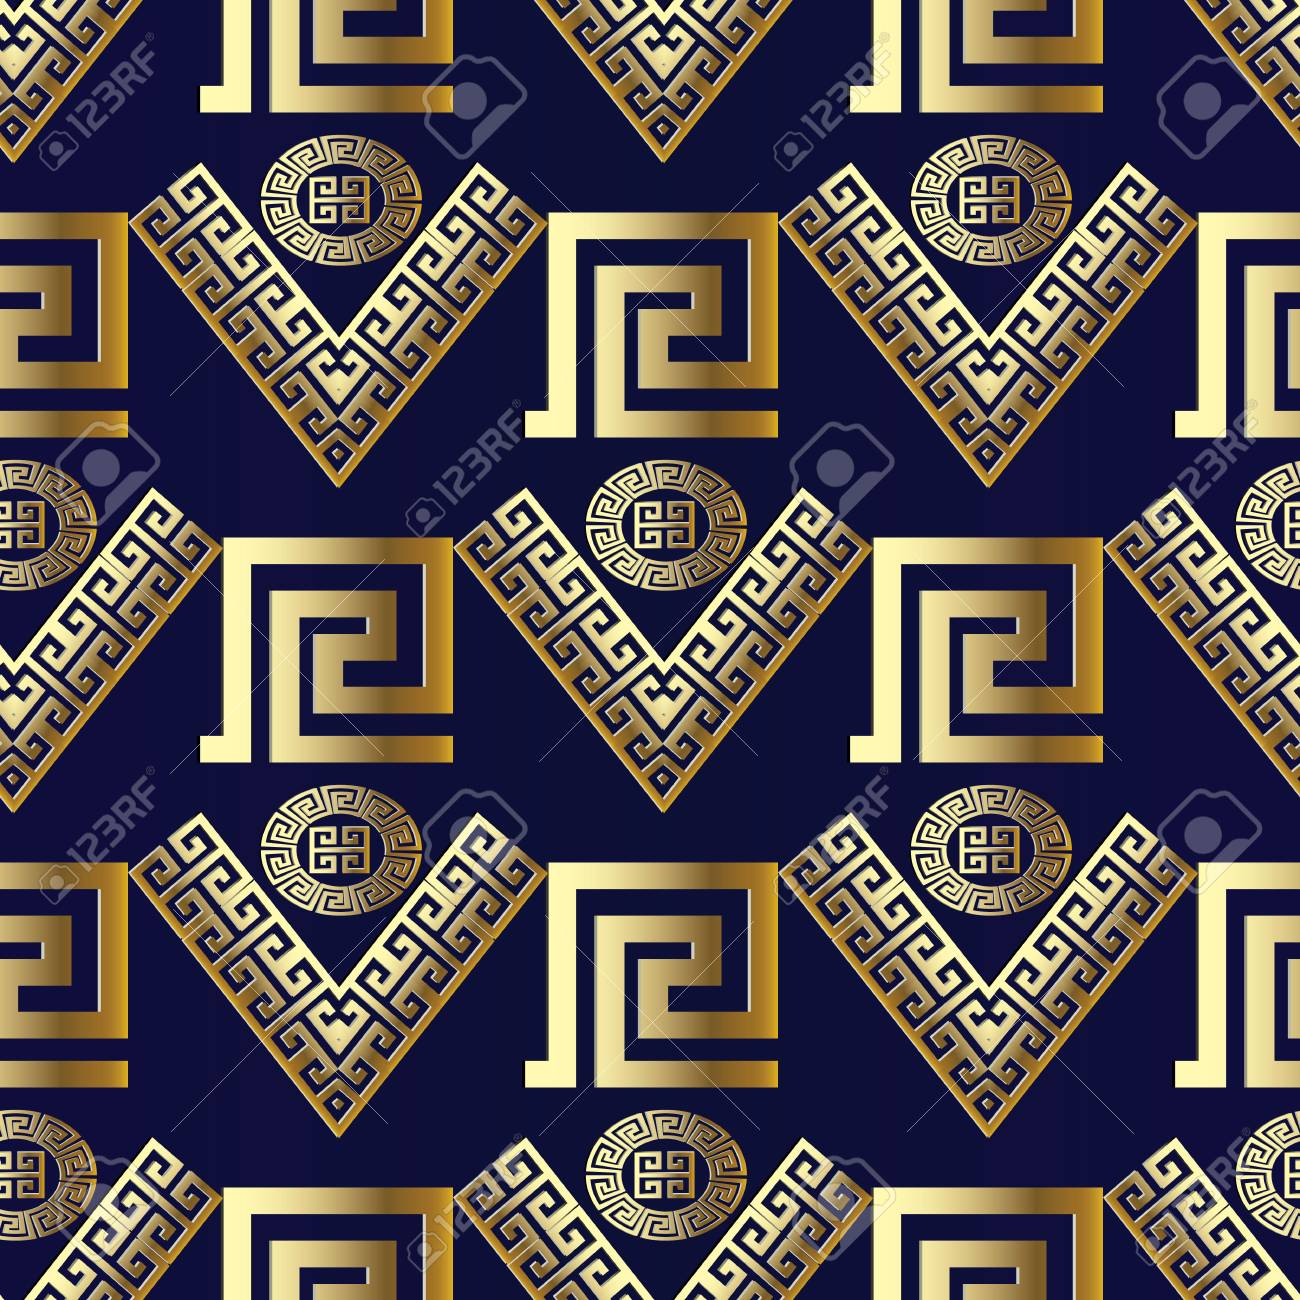 Geometric Modern Vector Seamless Pattern Blue Background Wallpaper With Gold Ornamental Abstract Shapes